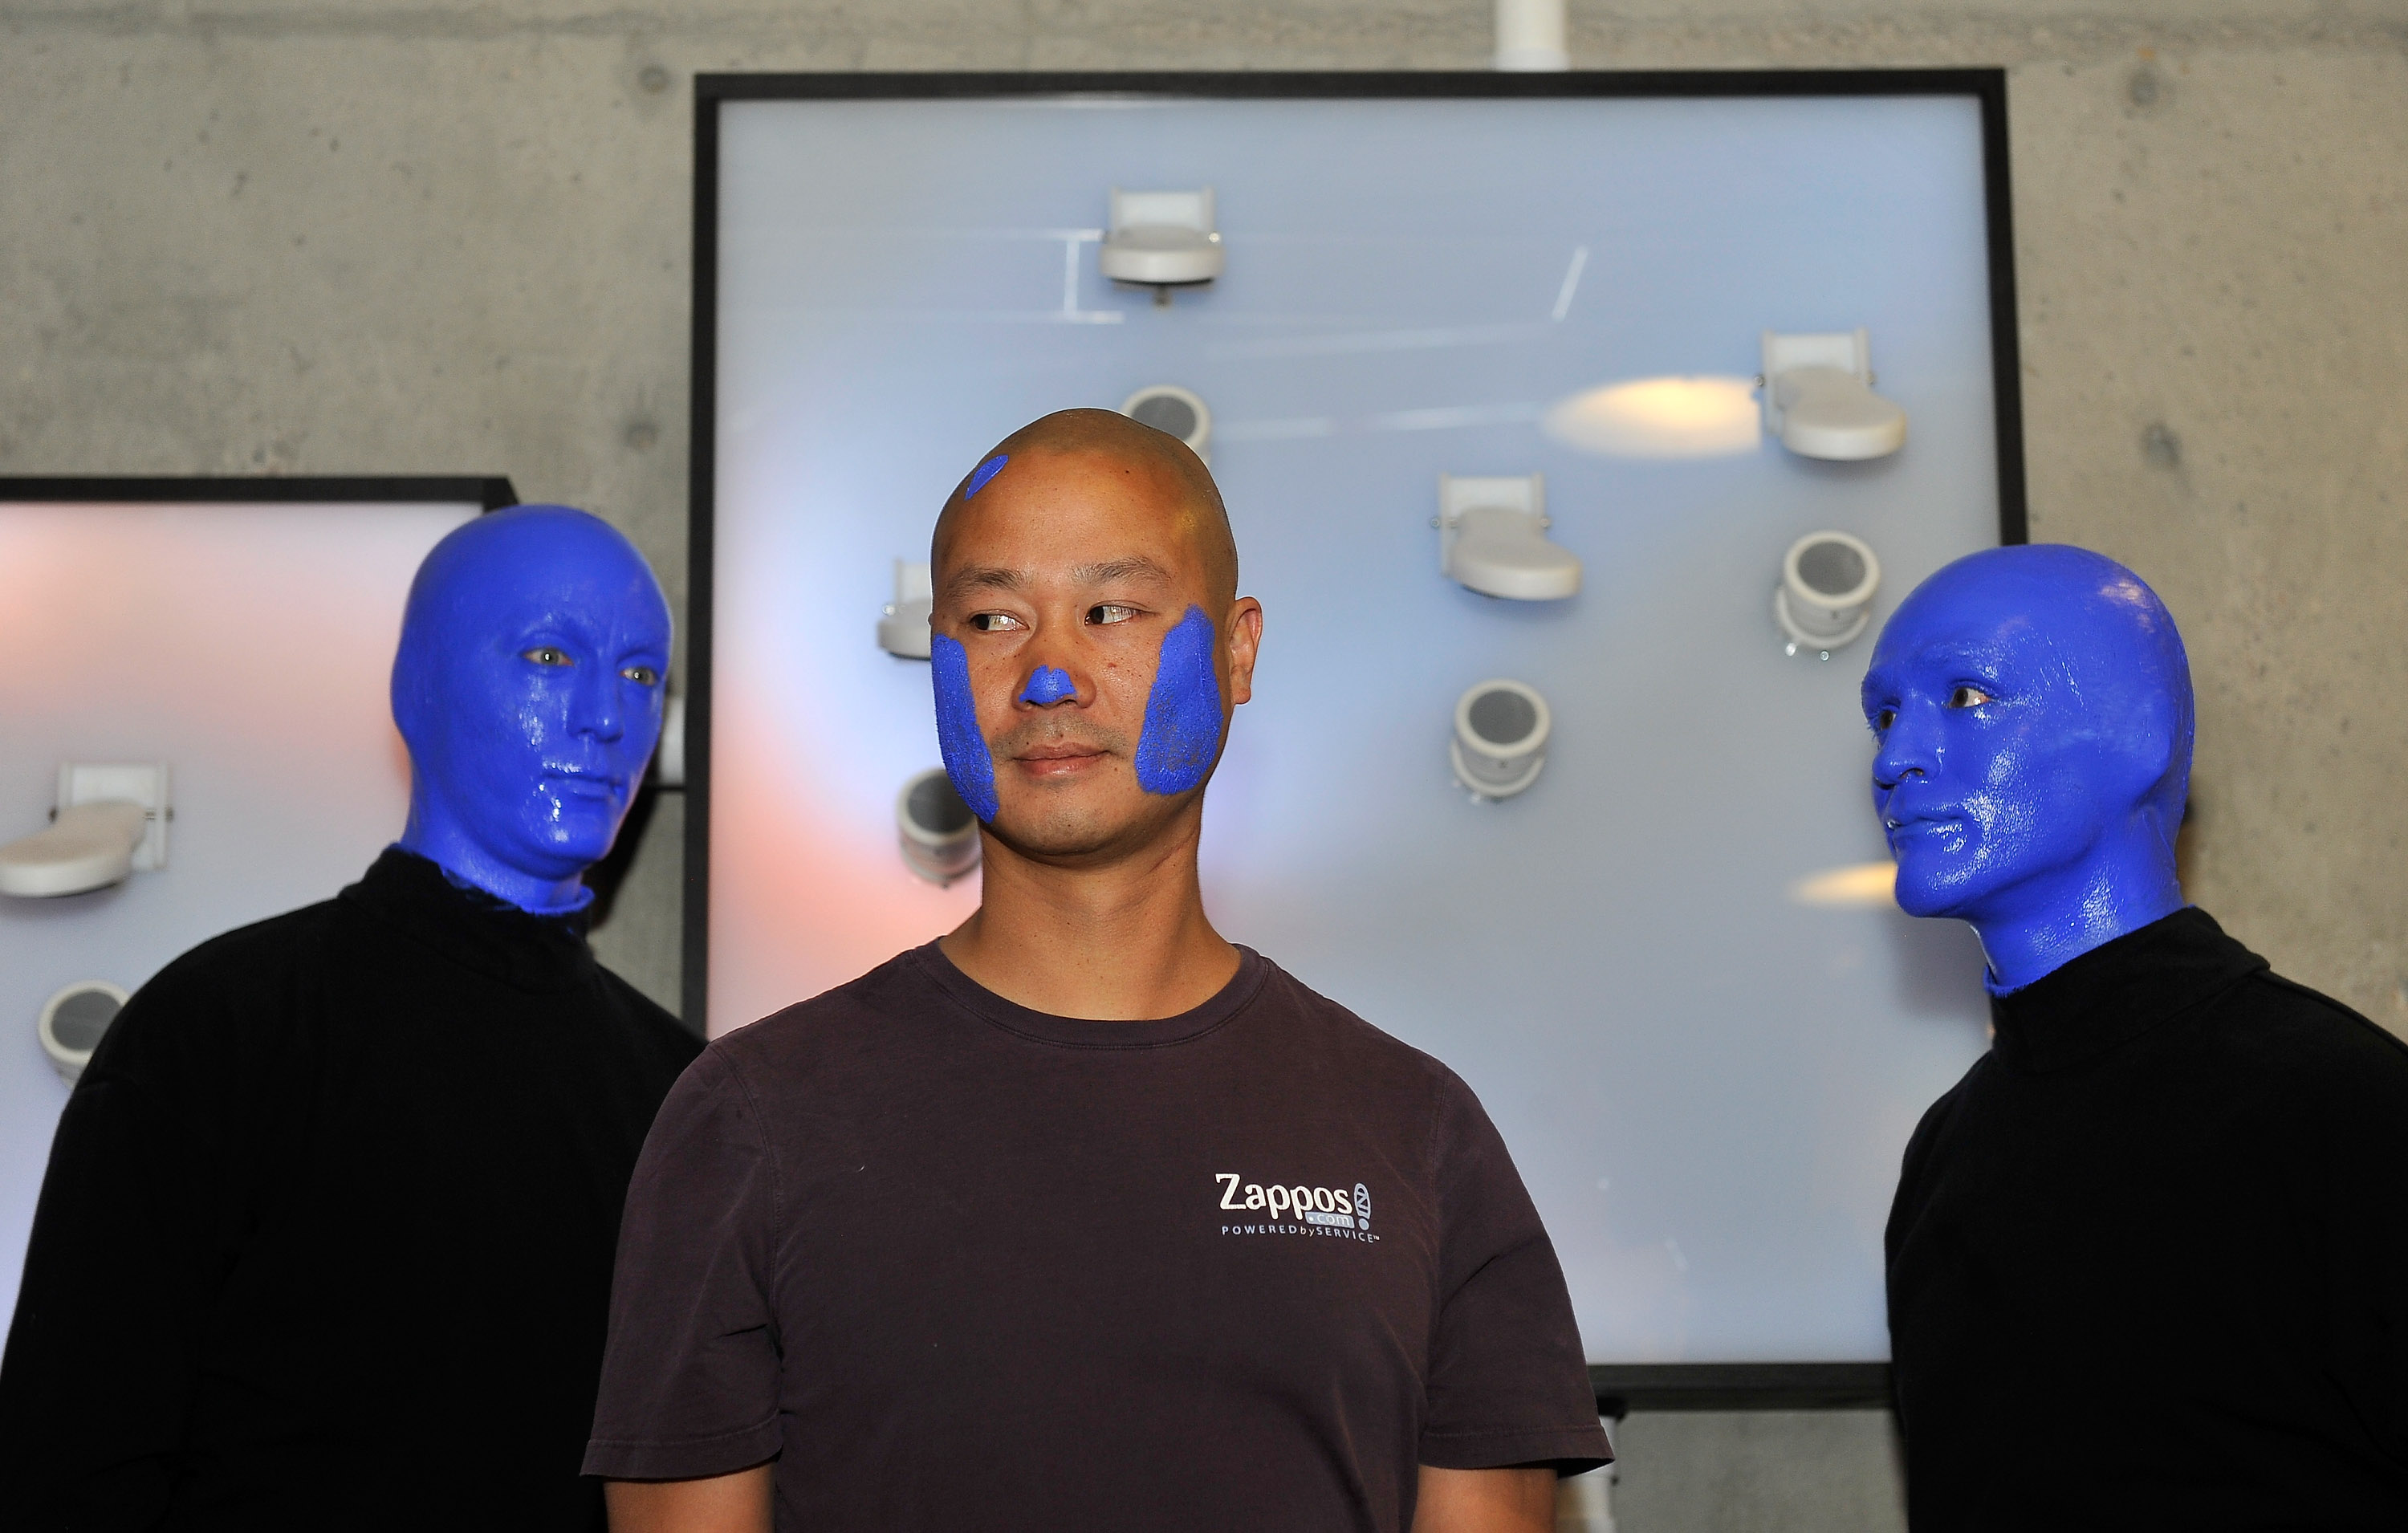 Remembering Tony Hsieh, Former Zappos CEO